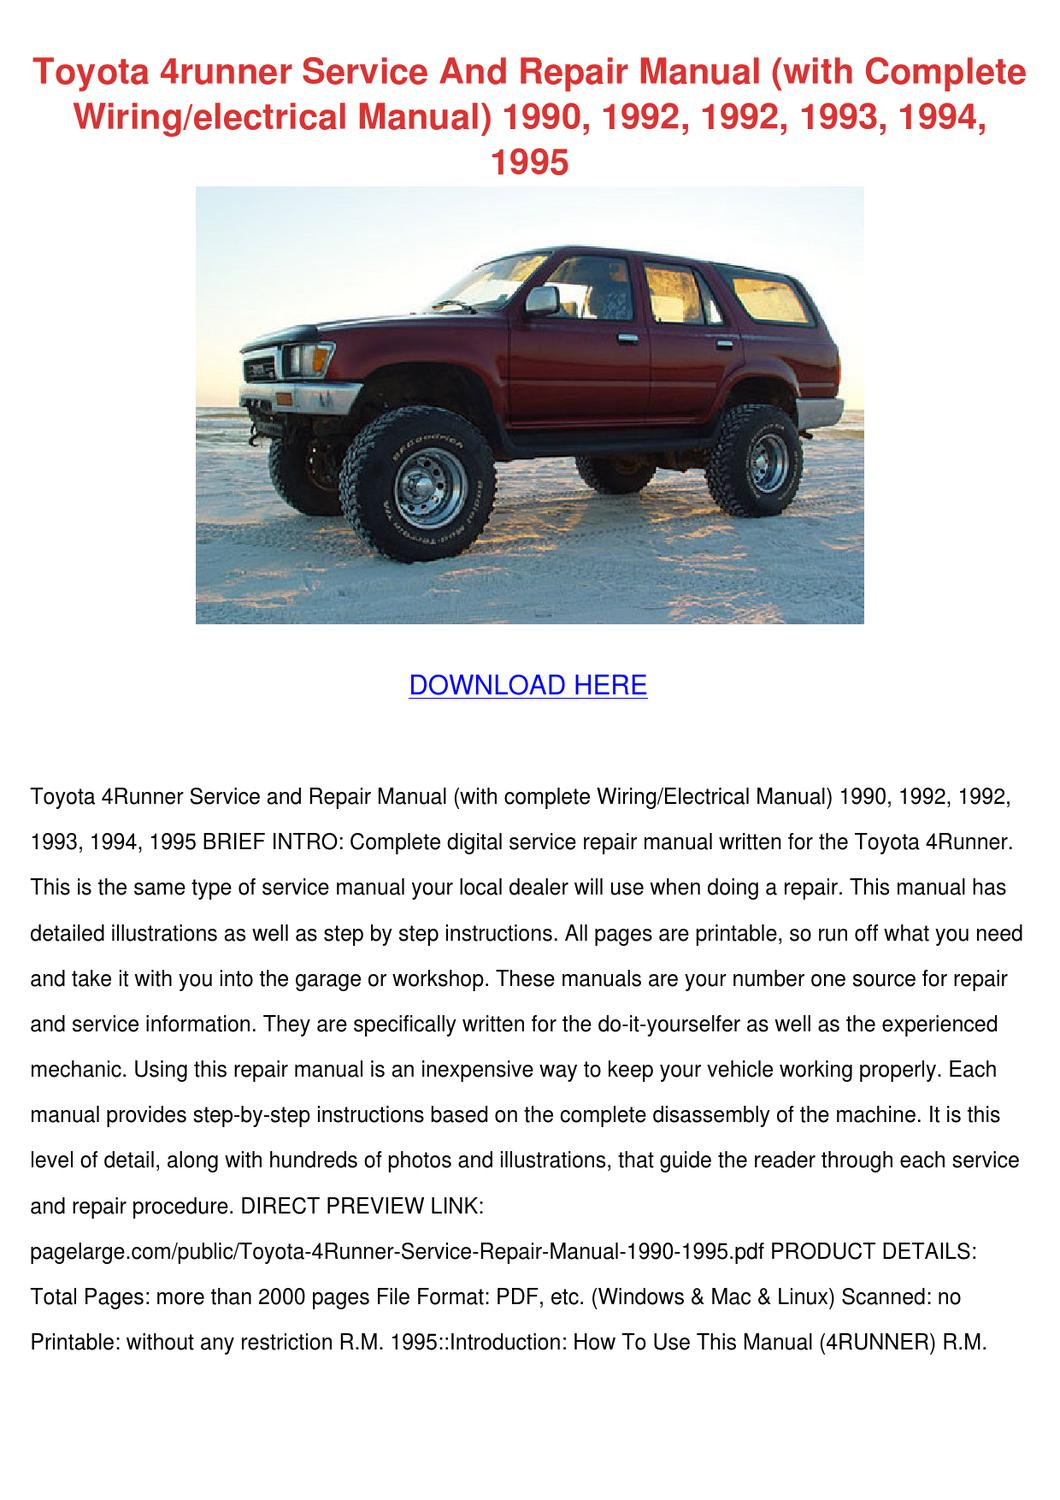 Toyota 4runner Service And Repair Manual With by Carlene Aggarwal ...